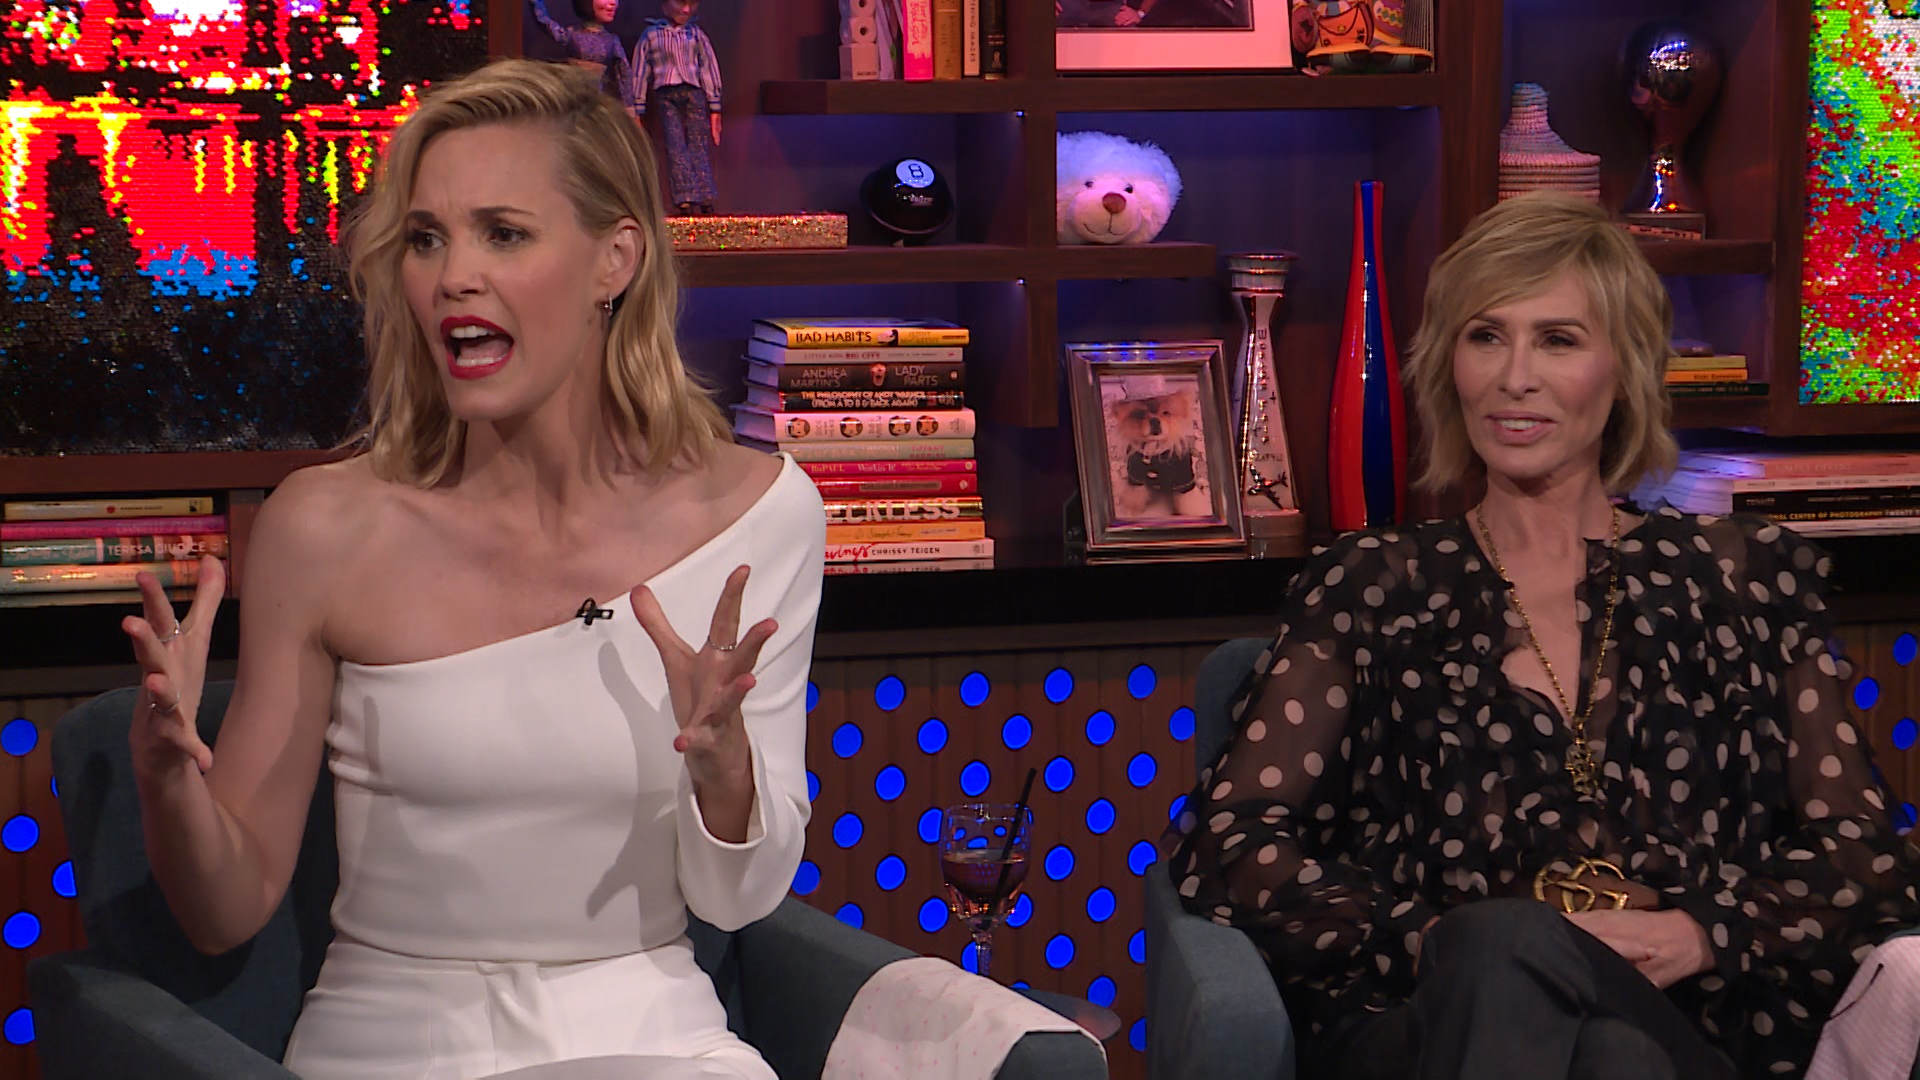 After Show: Leslie Bibb's Drunken Mistake